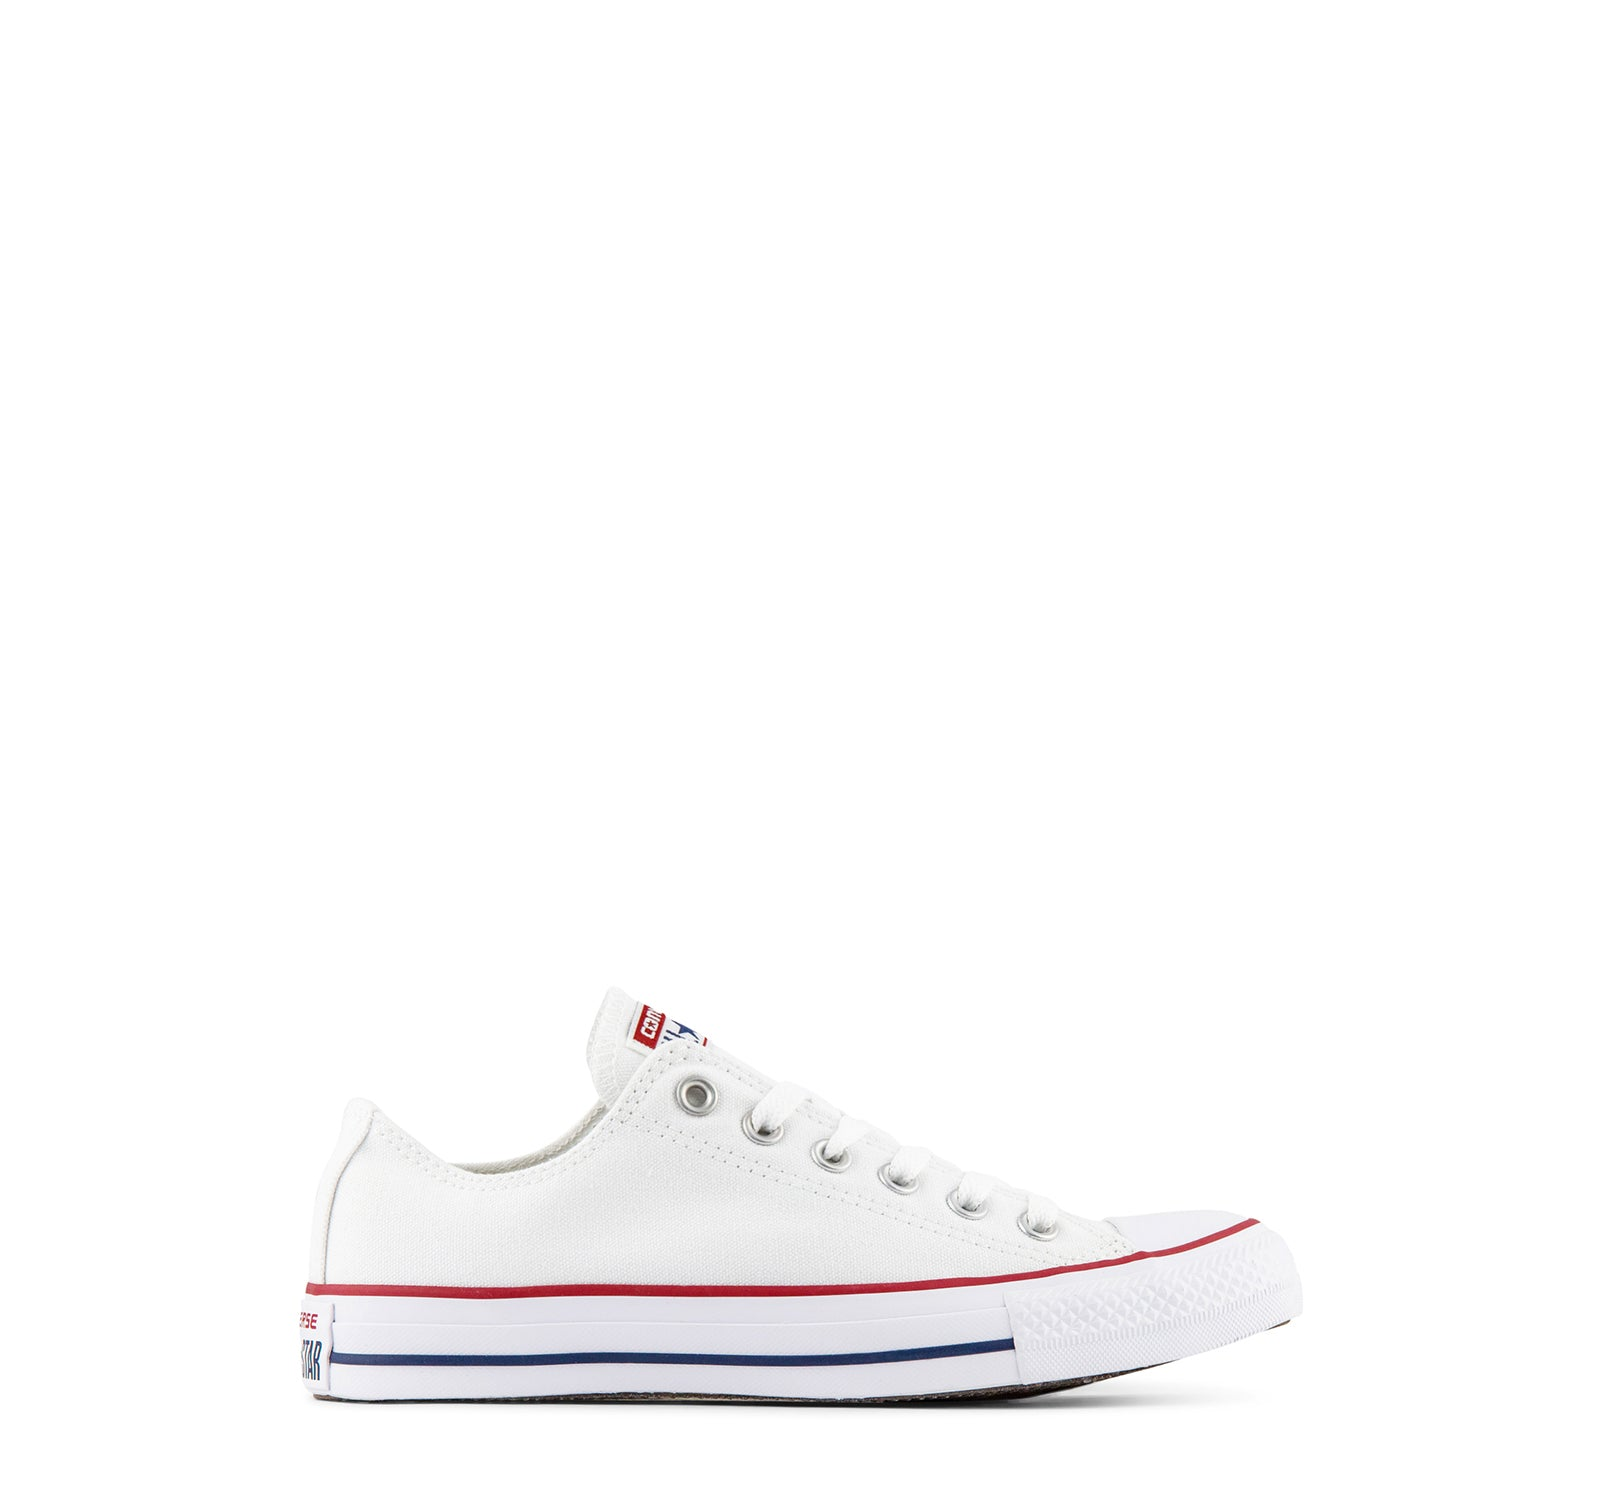 Converse Chuck Taylor All Star Low Top Kids' Sneaker in Optic White - Converse - On The EDGE